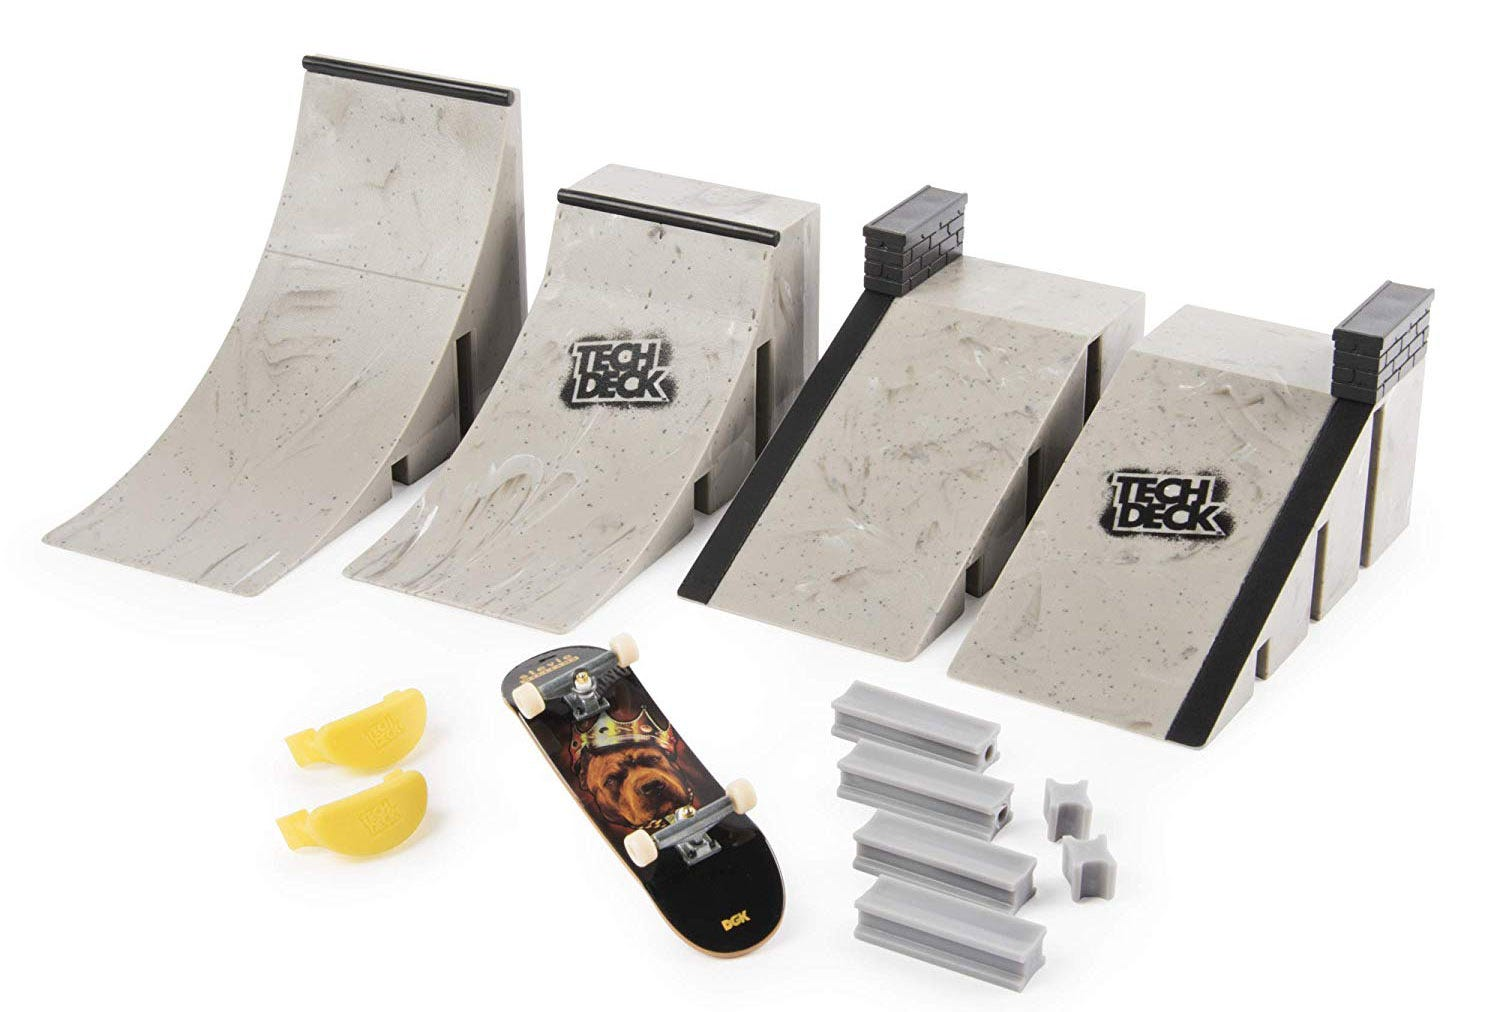 A finger skateboard set with plastic ramps.